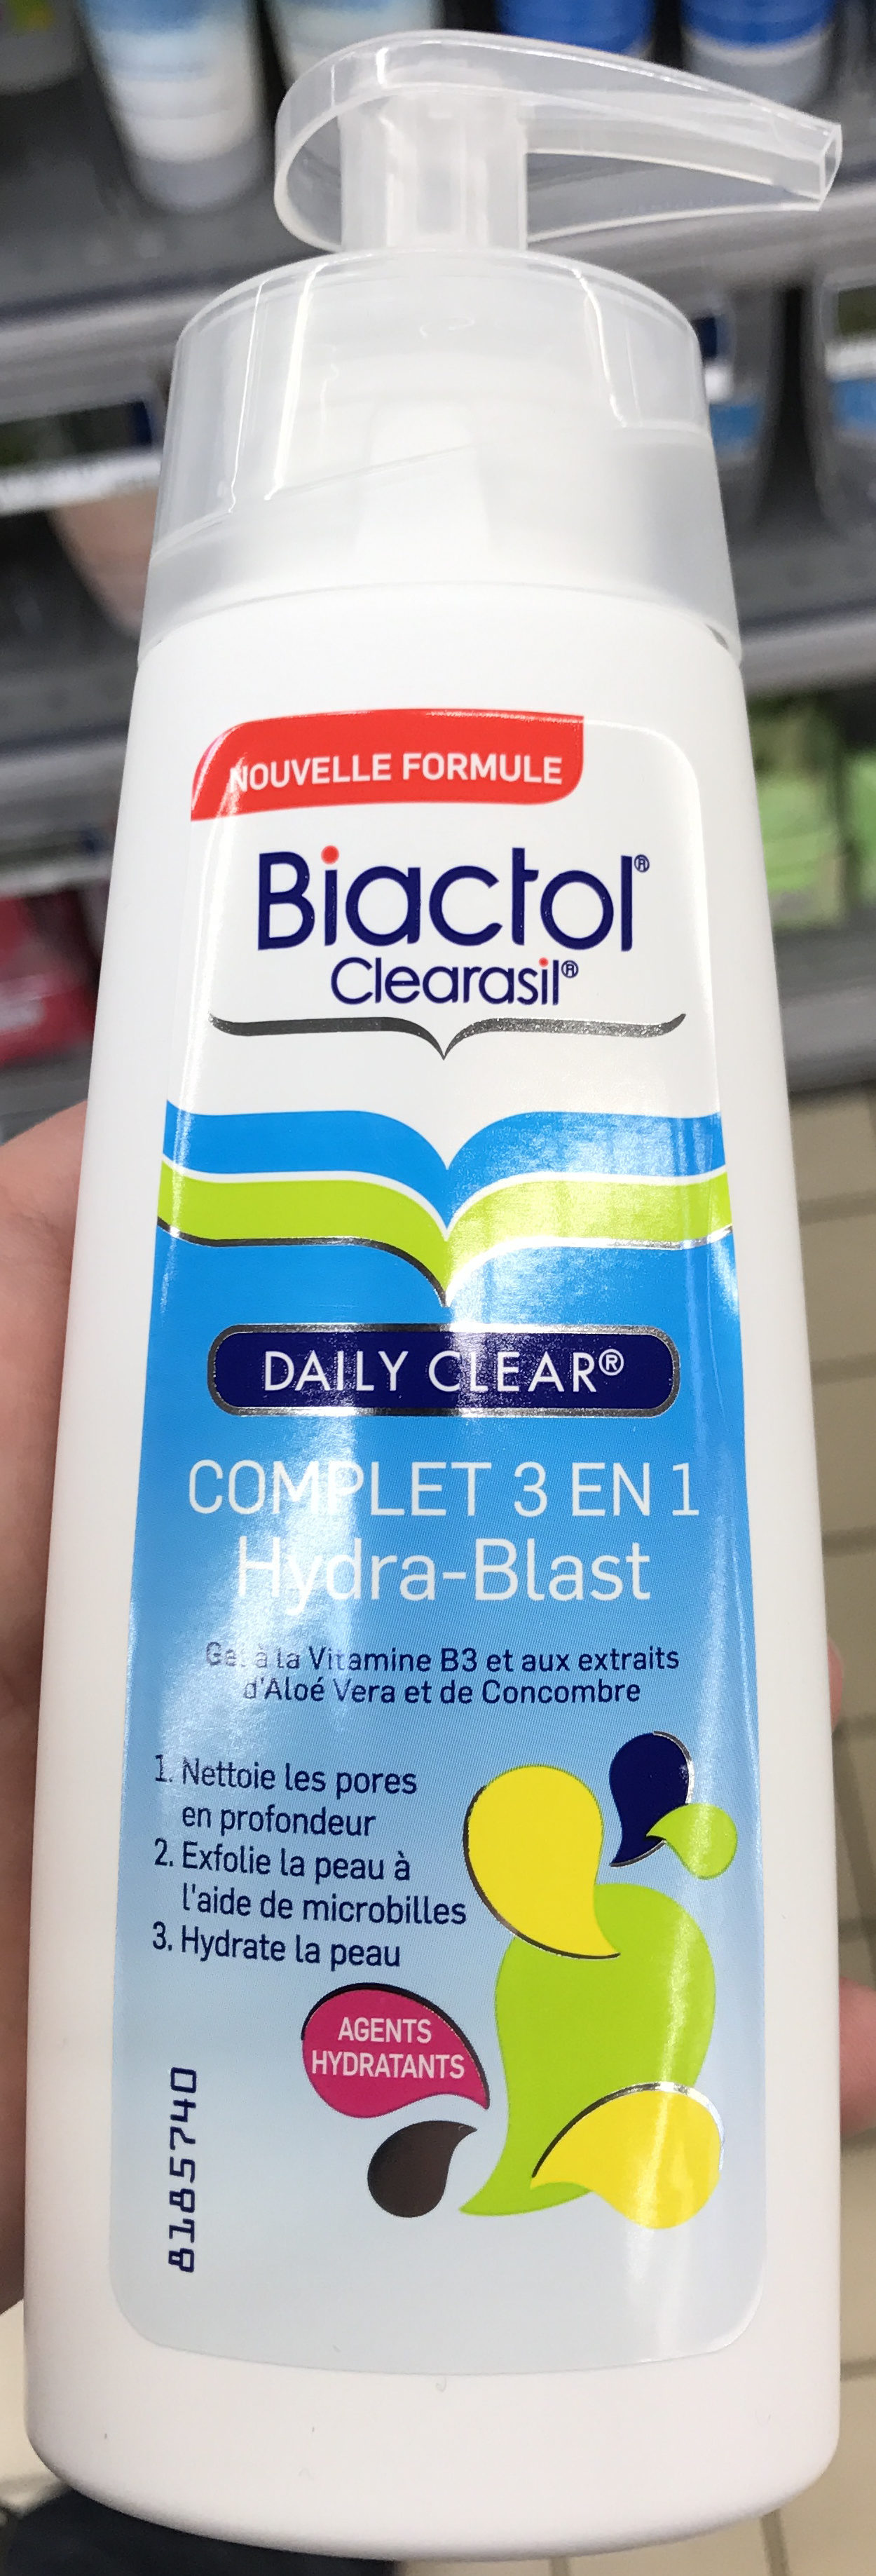 Clearasil Daily Clear Complet 3 en 1 Hydra-Blast - Product - fr